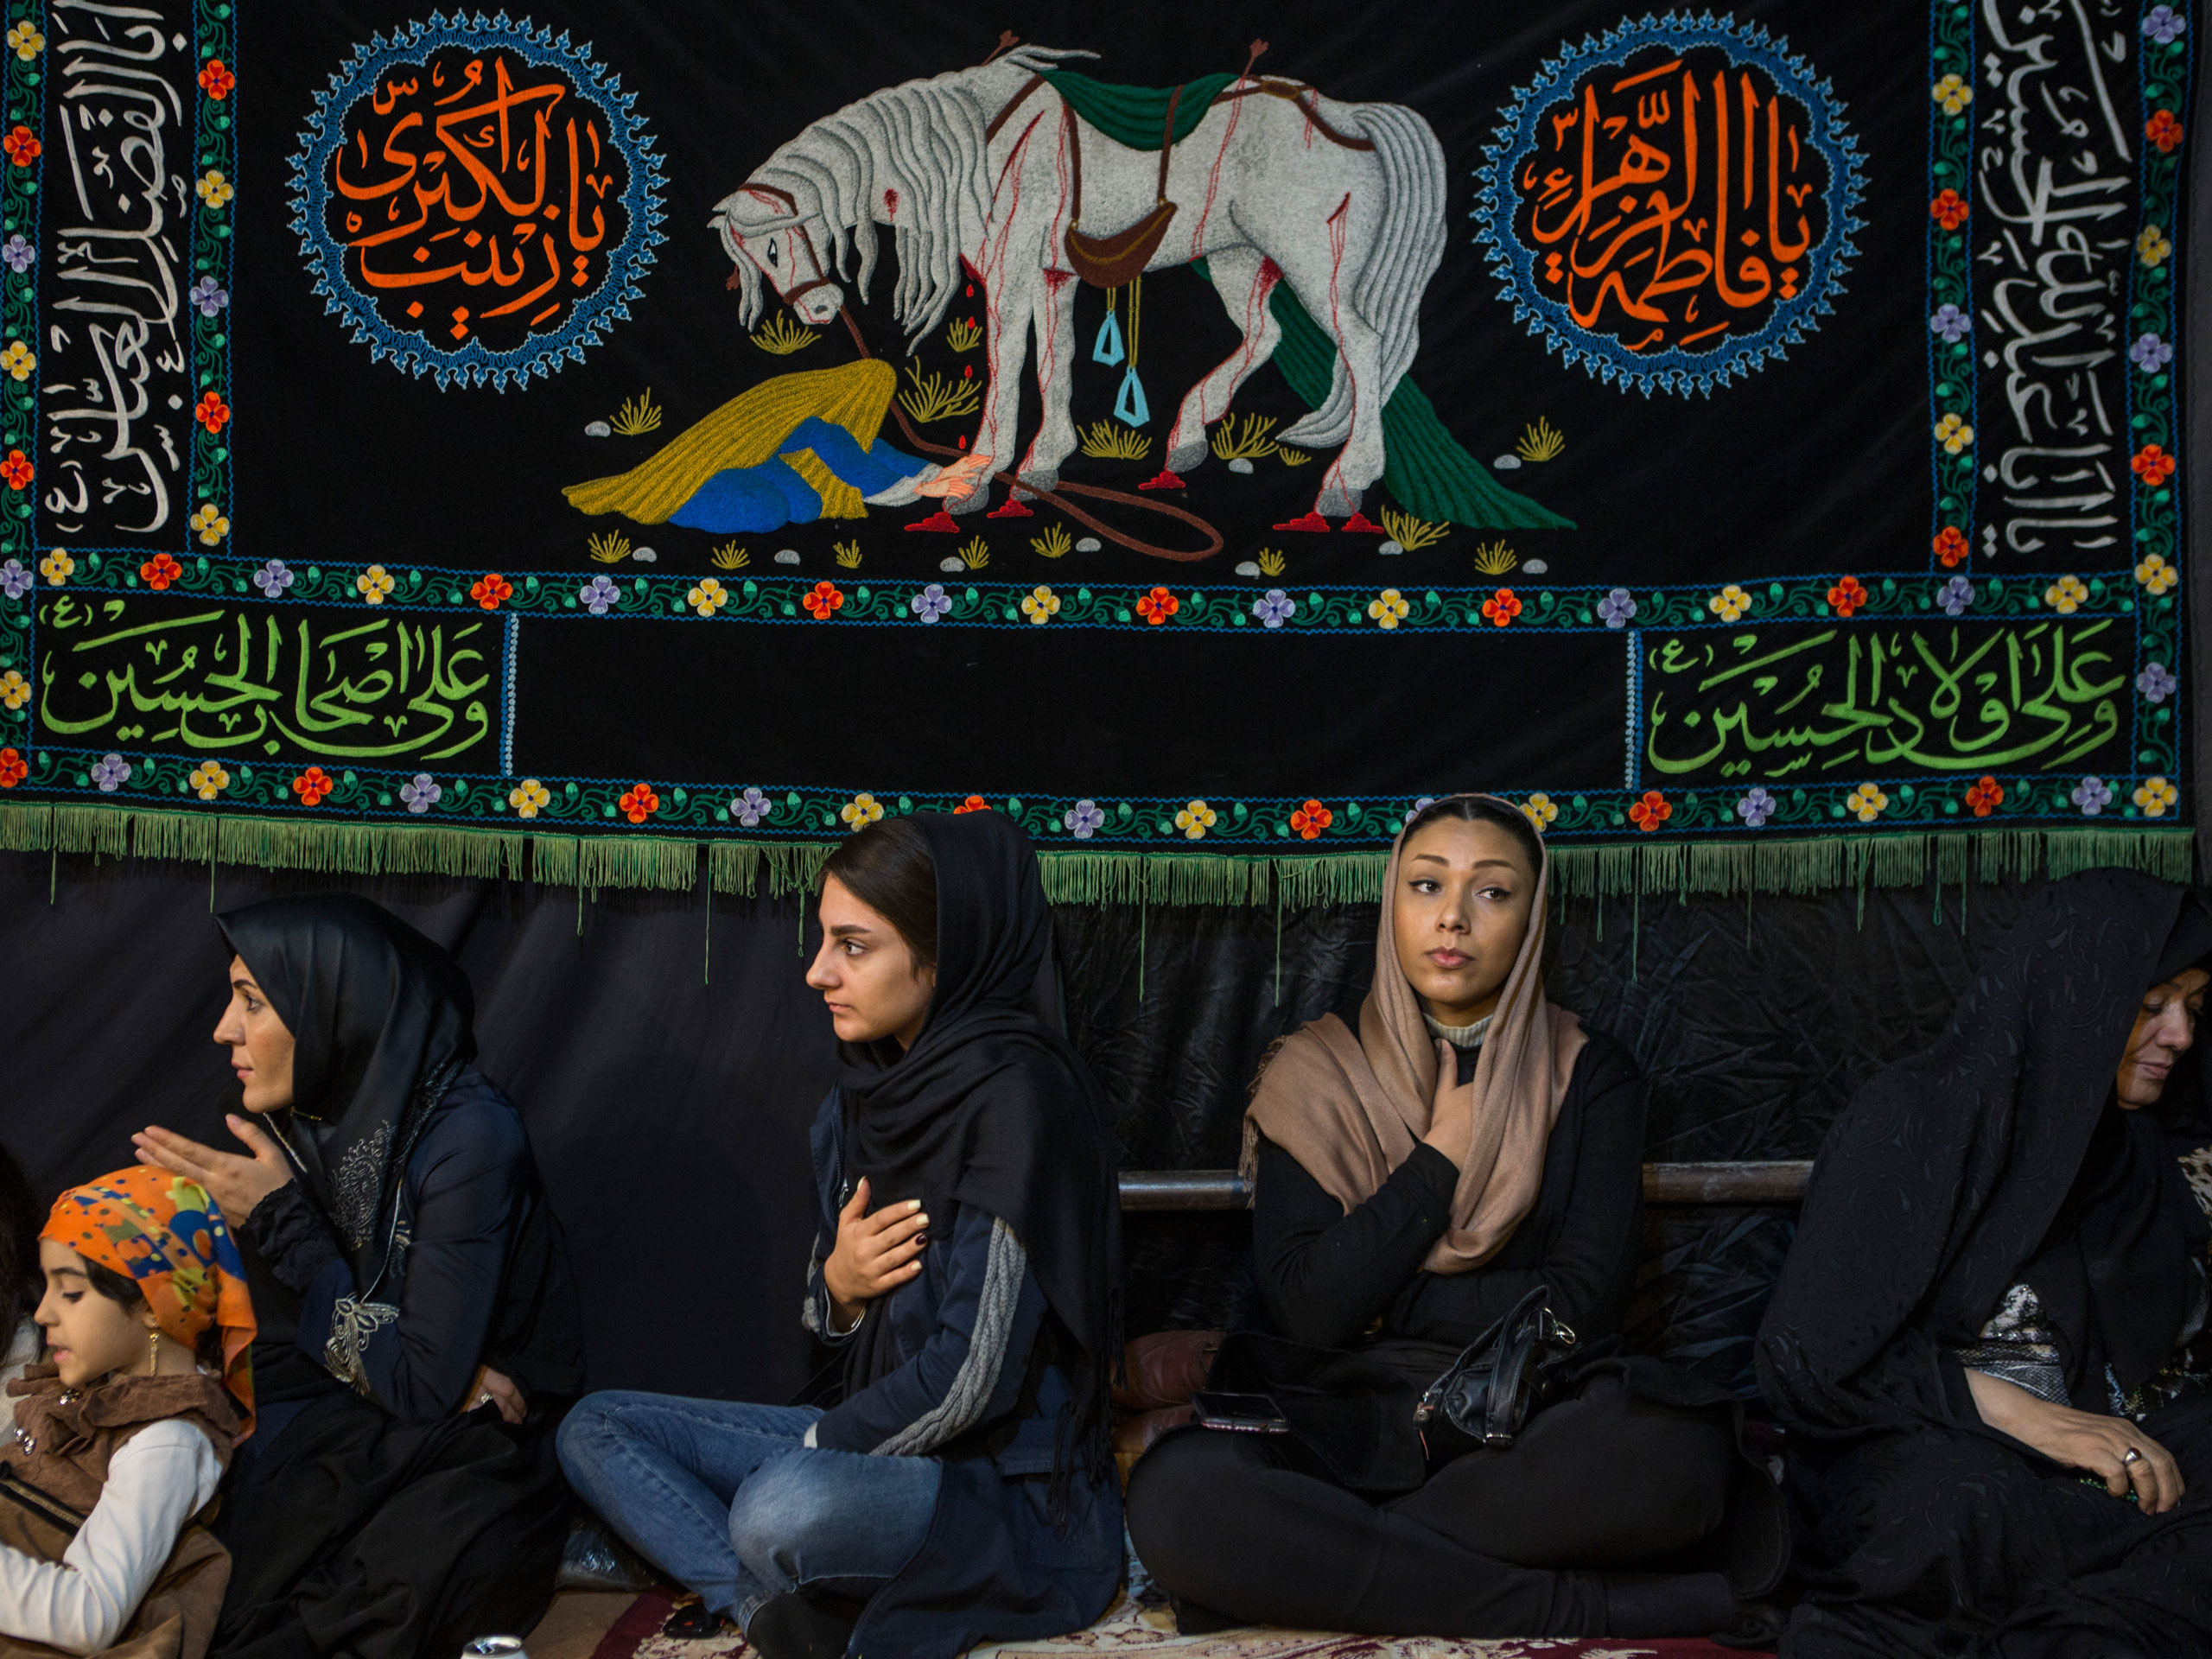 Iranian women beat their chests as they listen to a female religious chanter, in a makeshift tent in western Tehran.